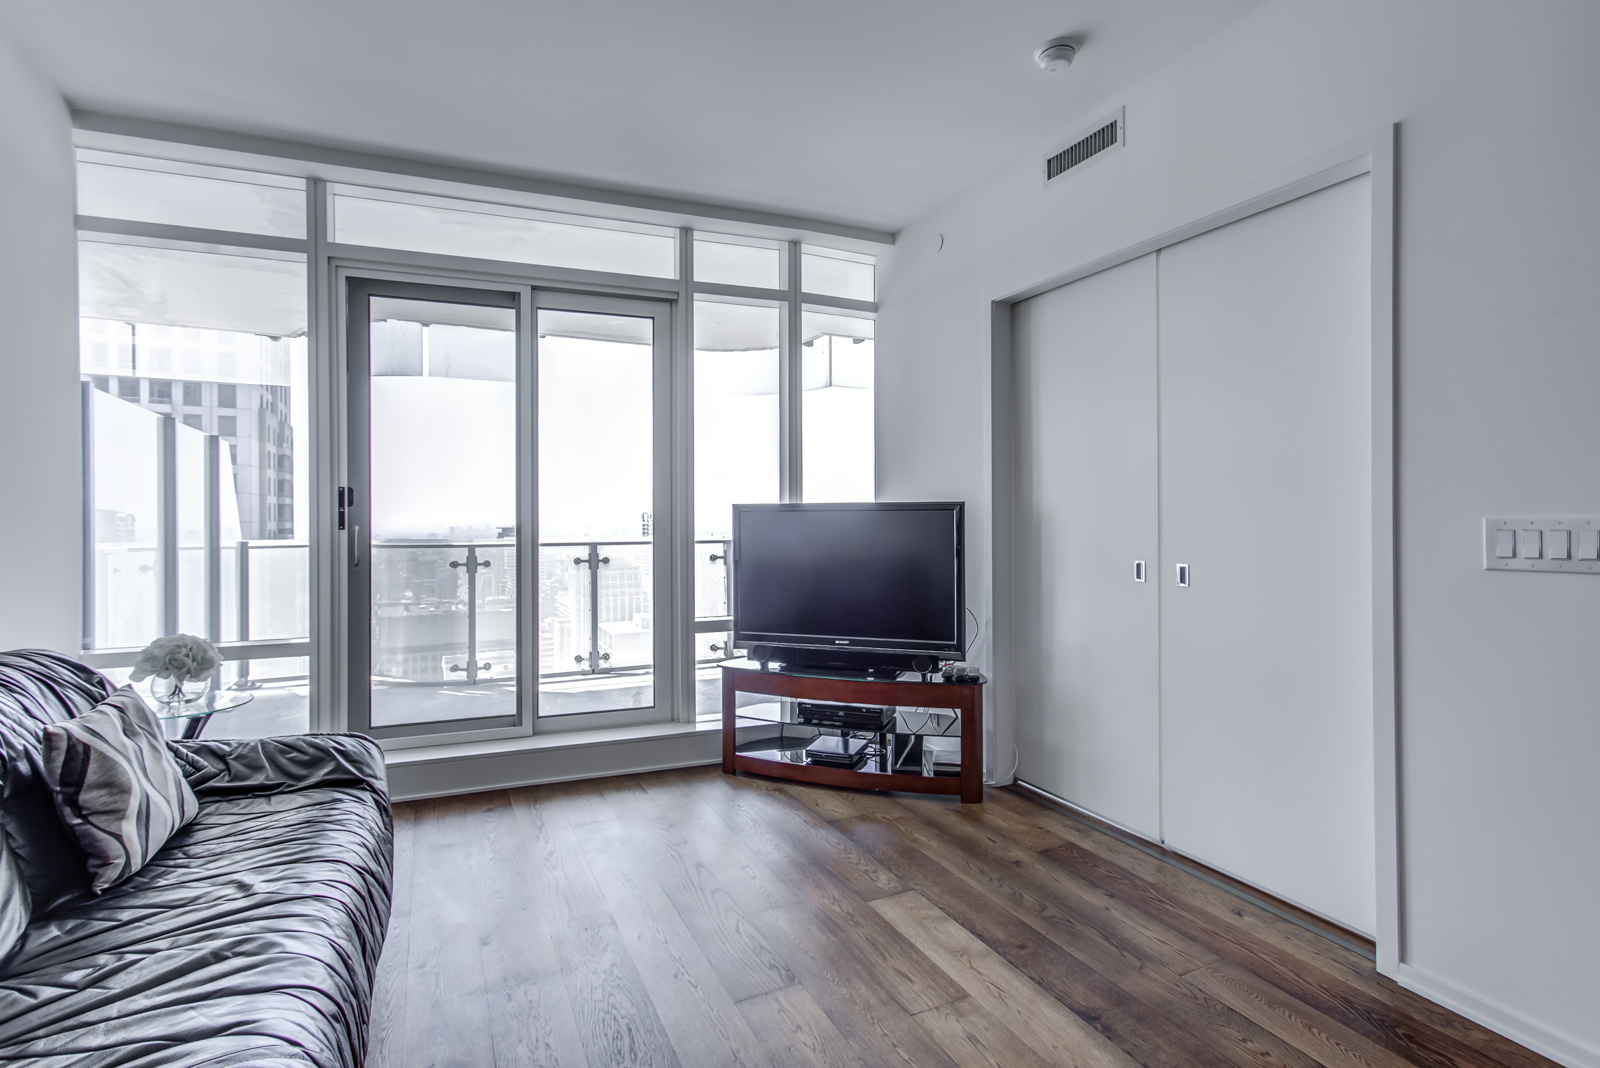 Photo of 1 Bloor St E Unit 3408 living room and balcony with huge windows.